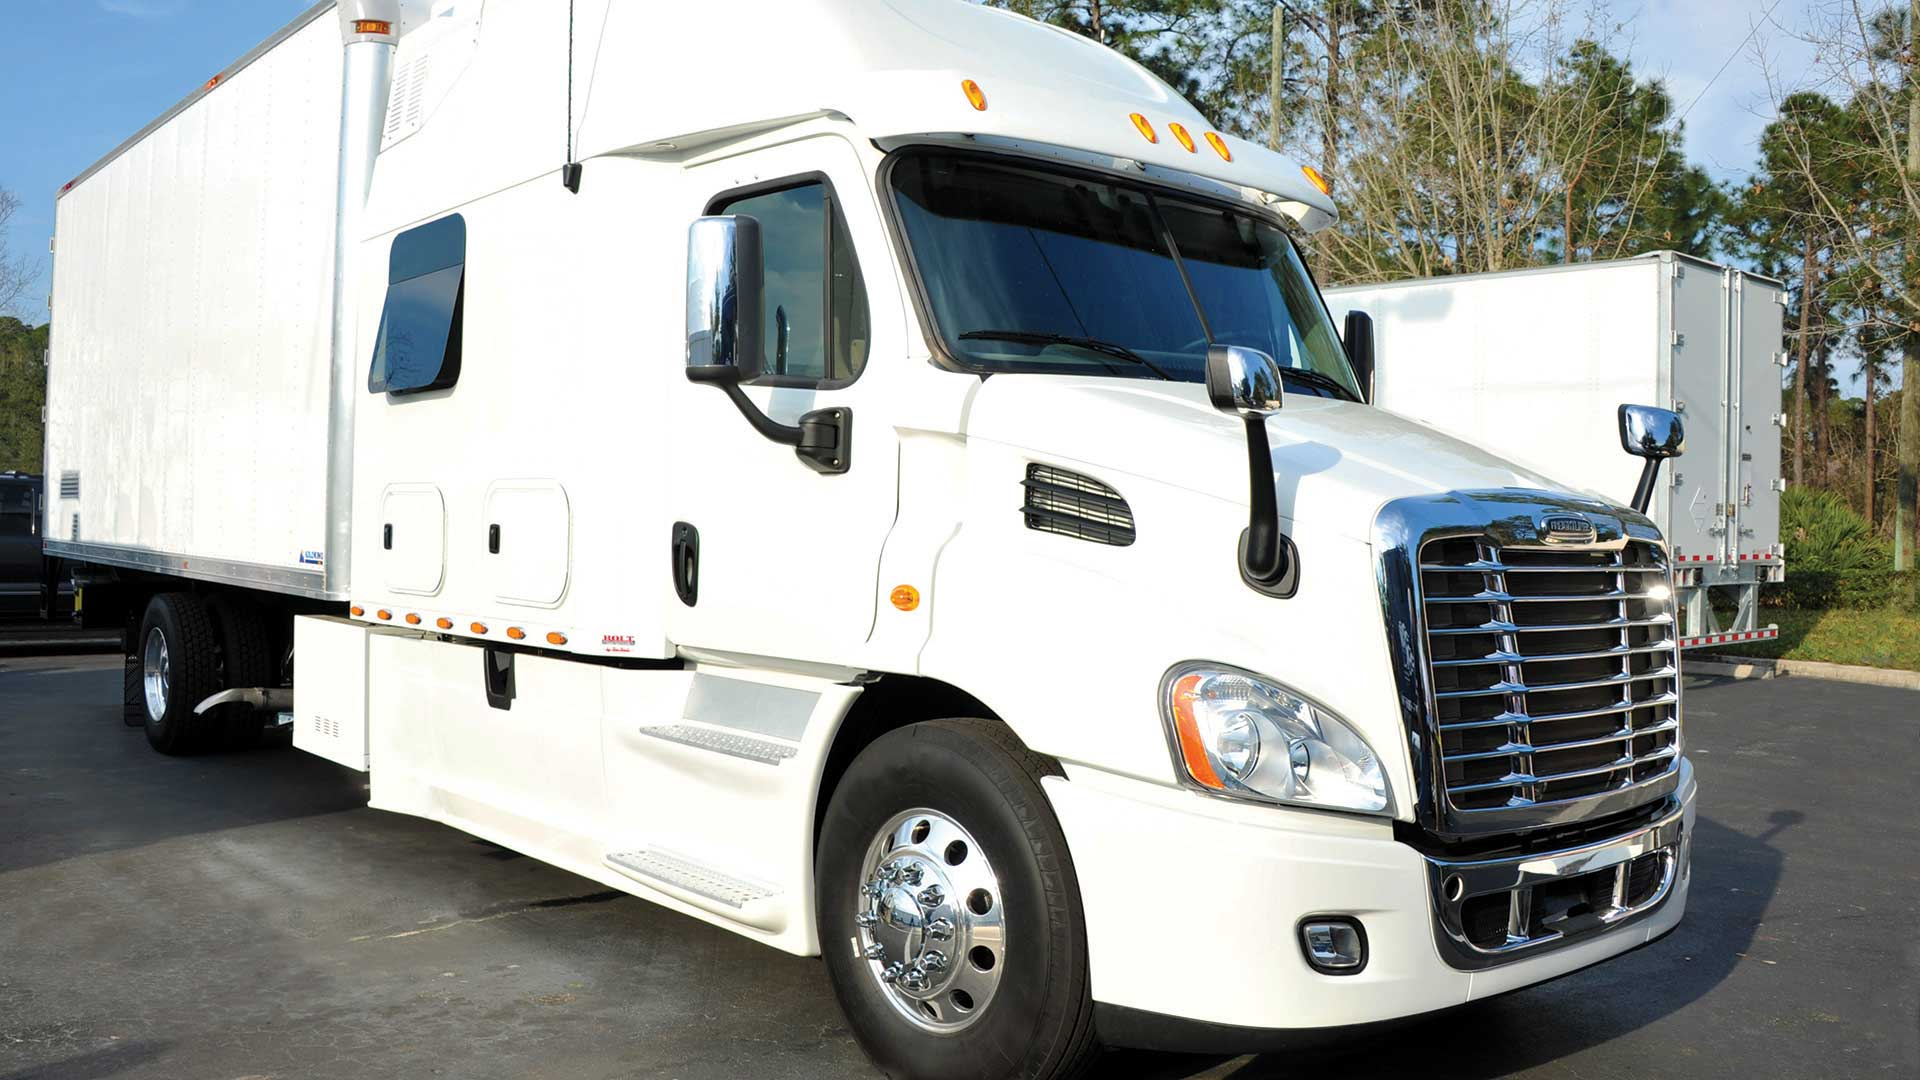 Landstar Cold Chain Services